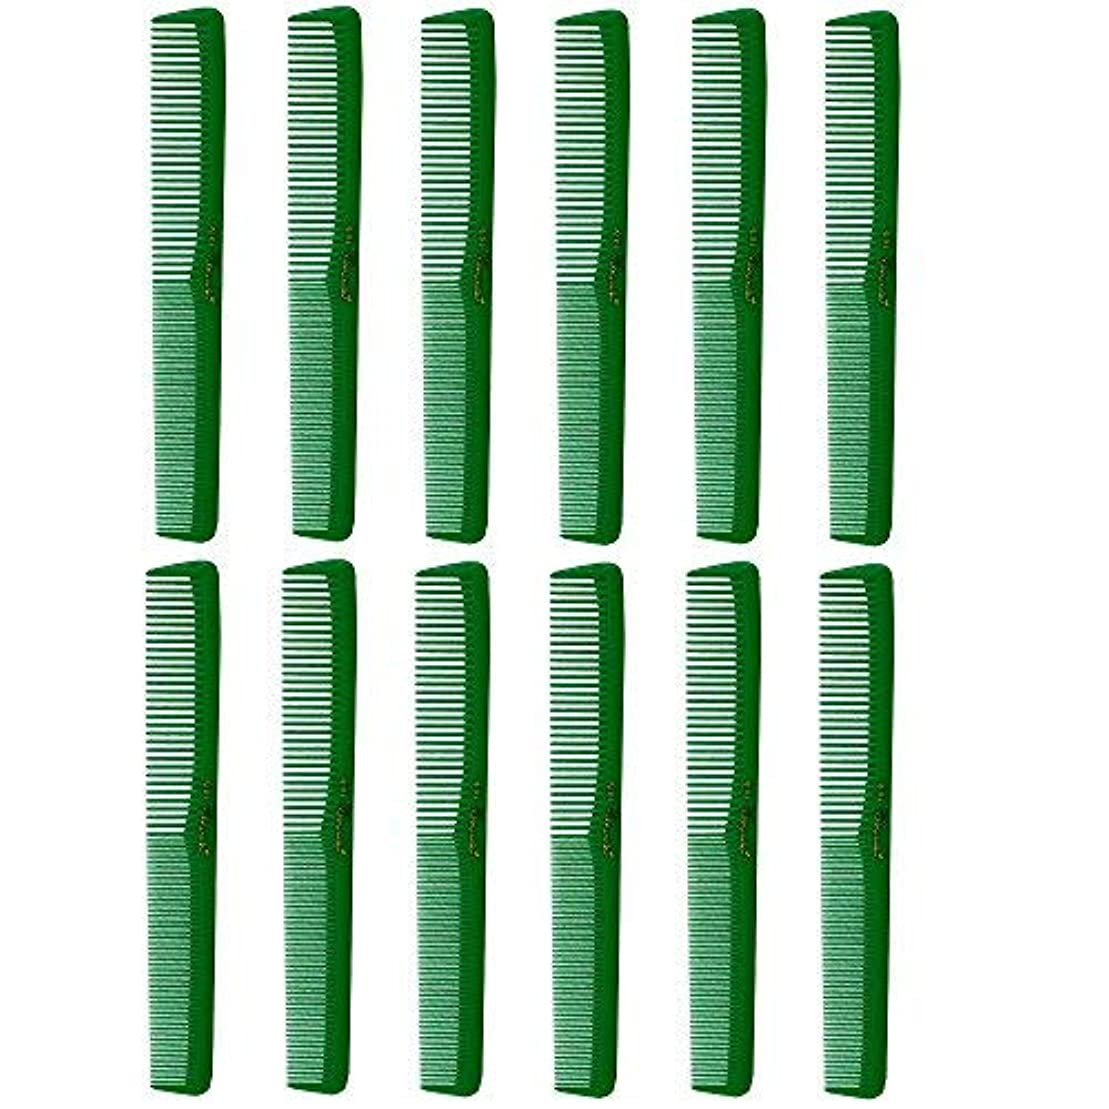 批判するサンダージャンクBarber Beauty Hair Cleopatra 400 All Purpose Combs (12 Pack) 12 x SB-C400-GREEN [並行輸入品]